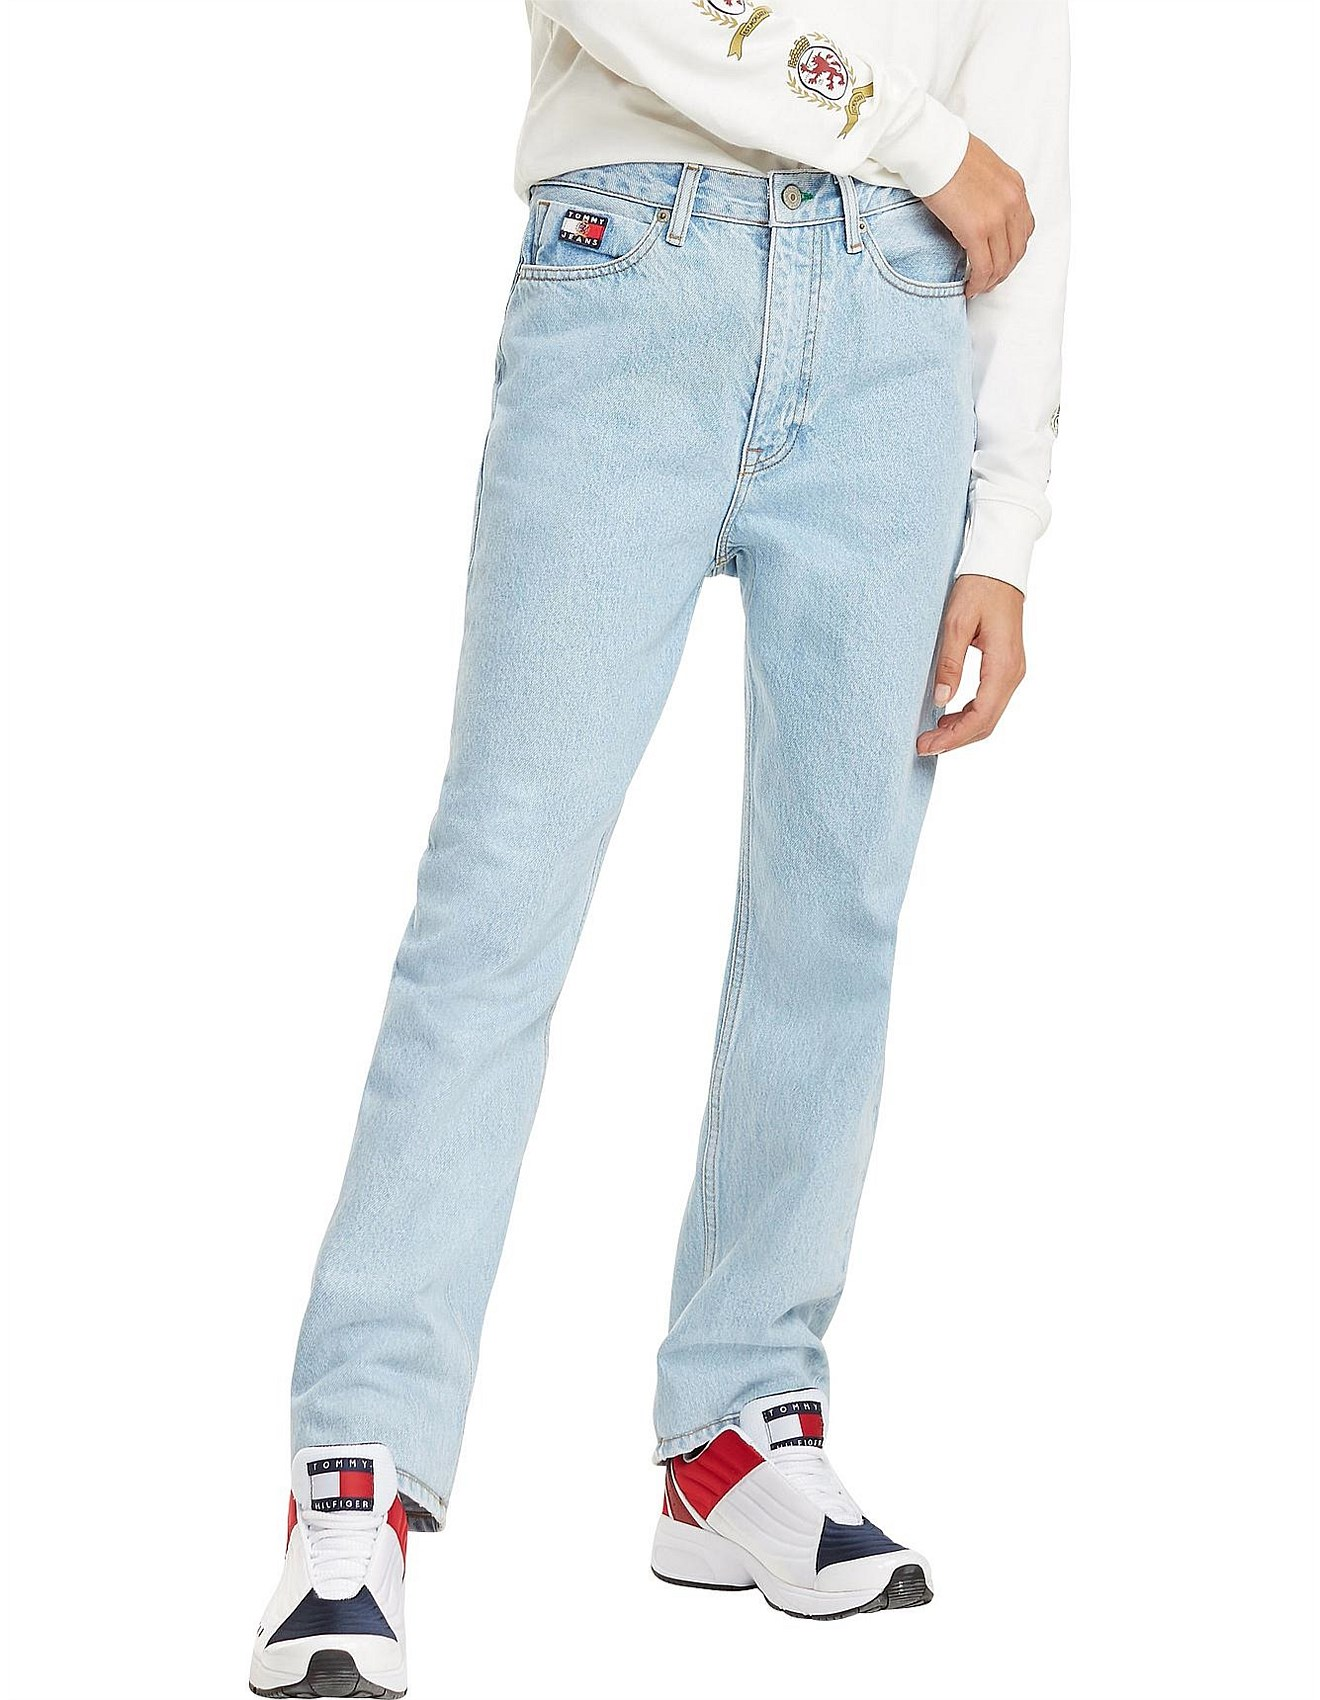 76f63e2e Tommy Hilfiger | Buy Tommy Hilfiger Online | David Jones - Tjw Mom Jeans